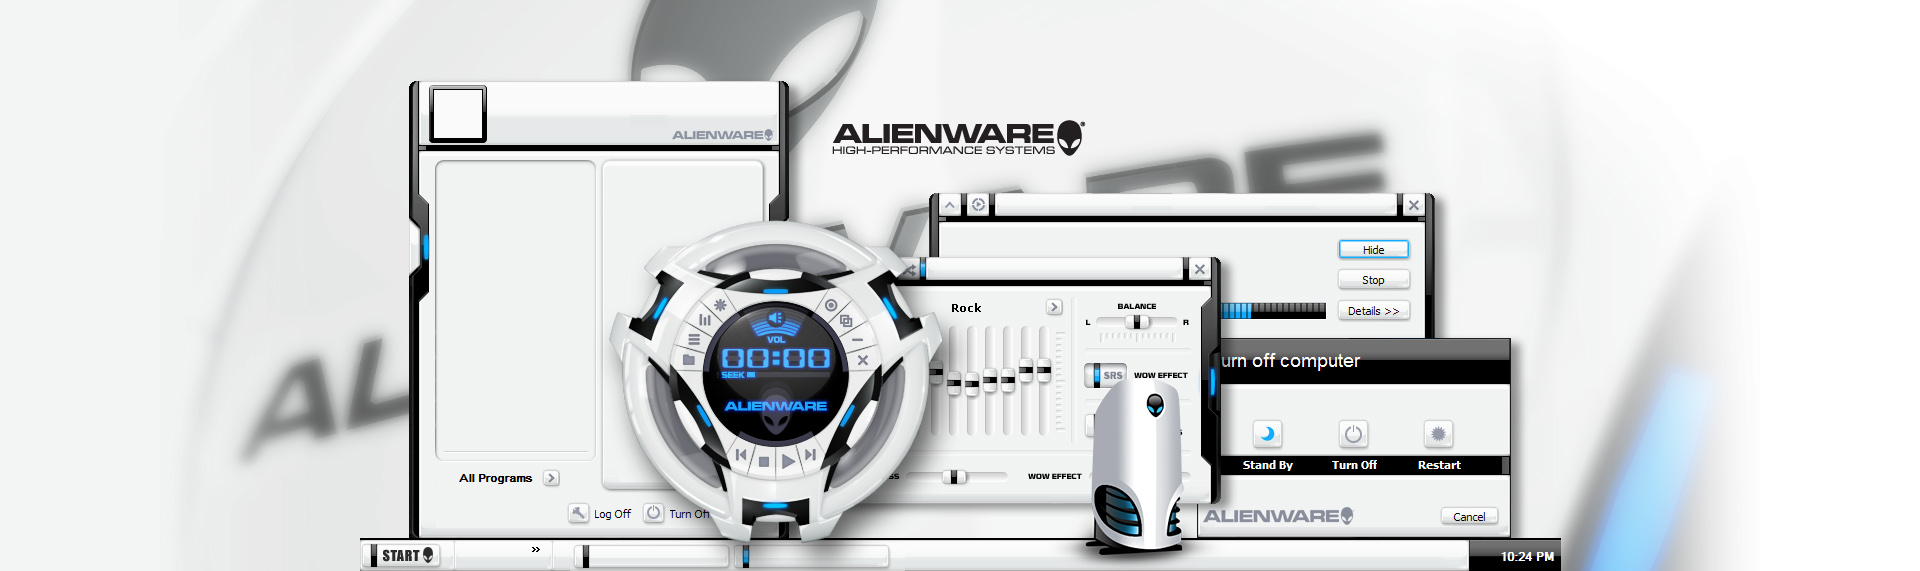 Alienware AlienMorph  Client: Alienware Corporation  Alienware Corporation and The Skins Factory designed the mega-popular Alienware AlienMorph Skin Suite. Suite includes an animated Windows Media Player skin, icons and a custom desktop wallpaper. Alienware has logged more than 2.5 million downloads (in the first year) of AlienMorph & ALXMorph desktop themes off their web servers, proving once again the power of desktop customization. Copyright. Alienware. All Rights Reserved.